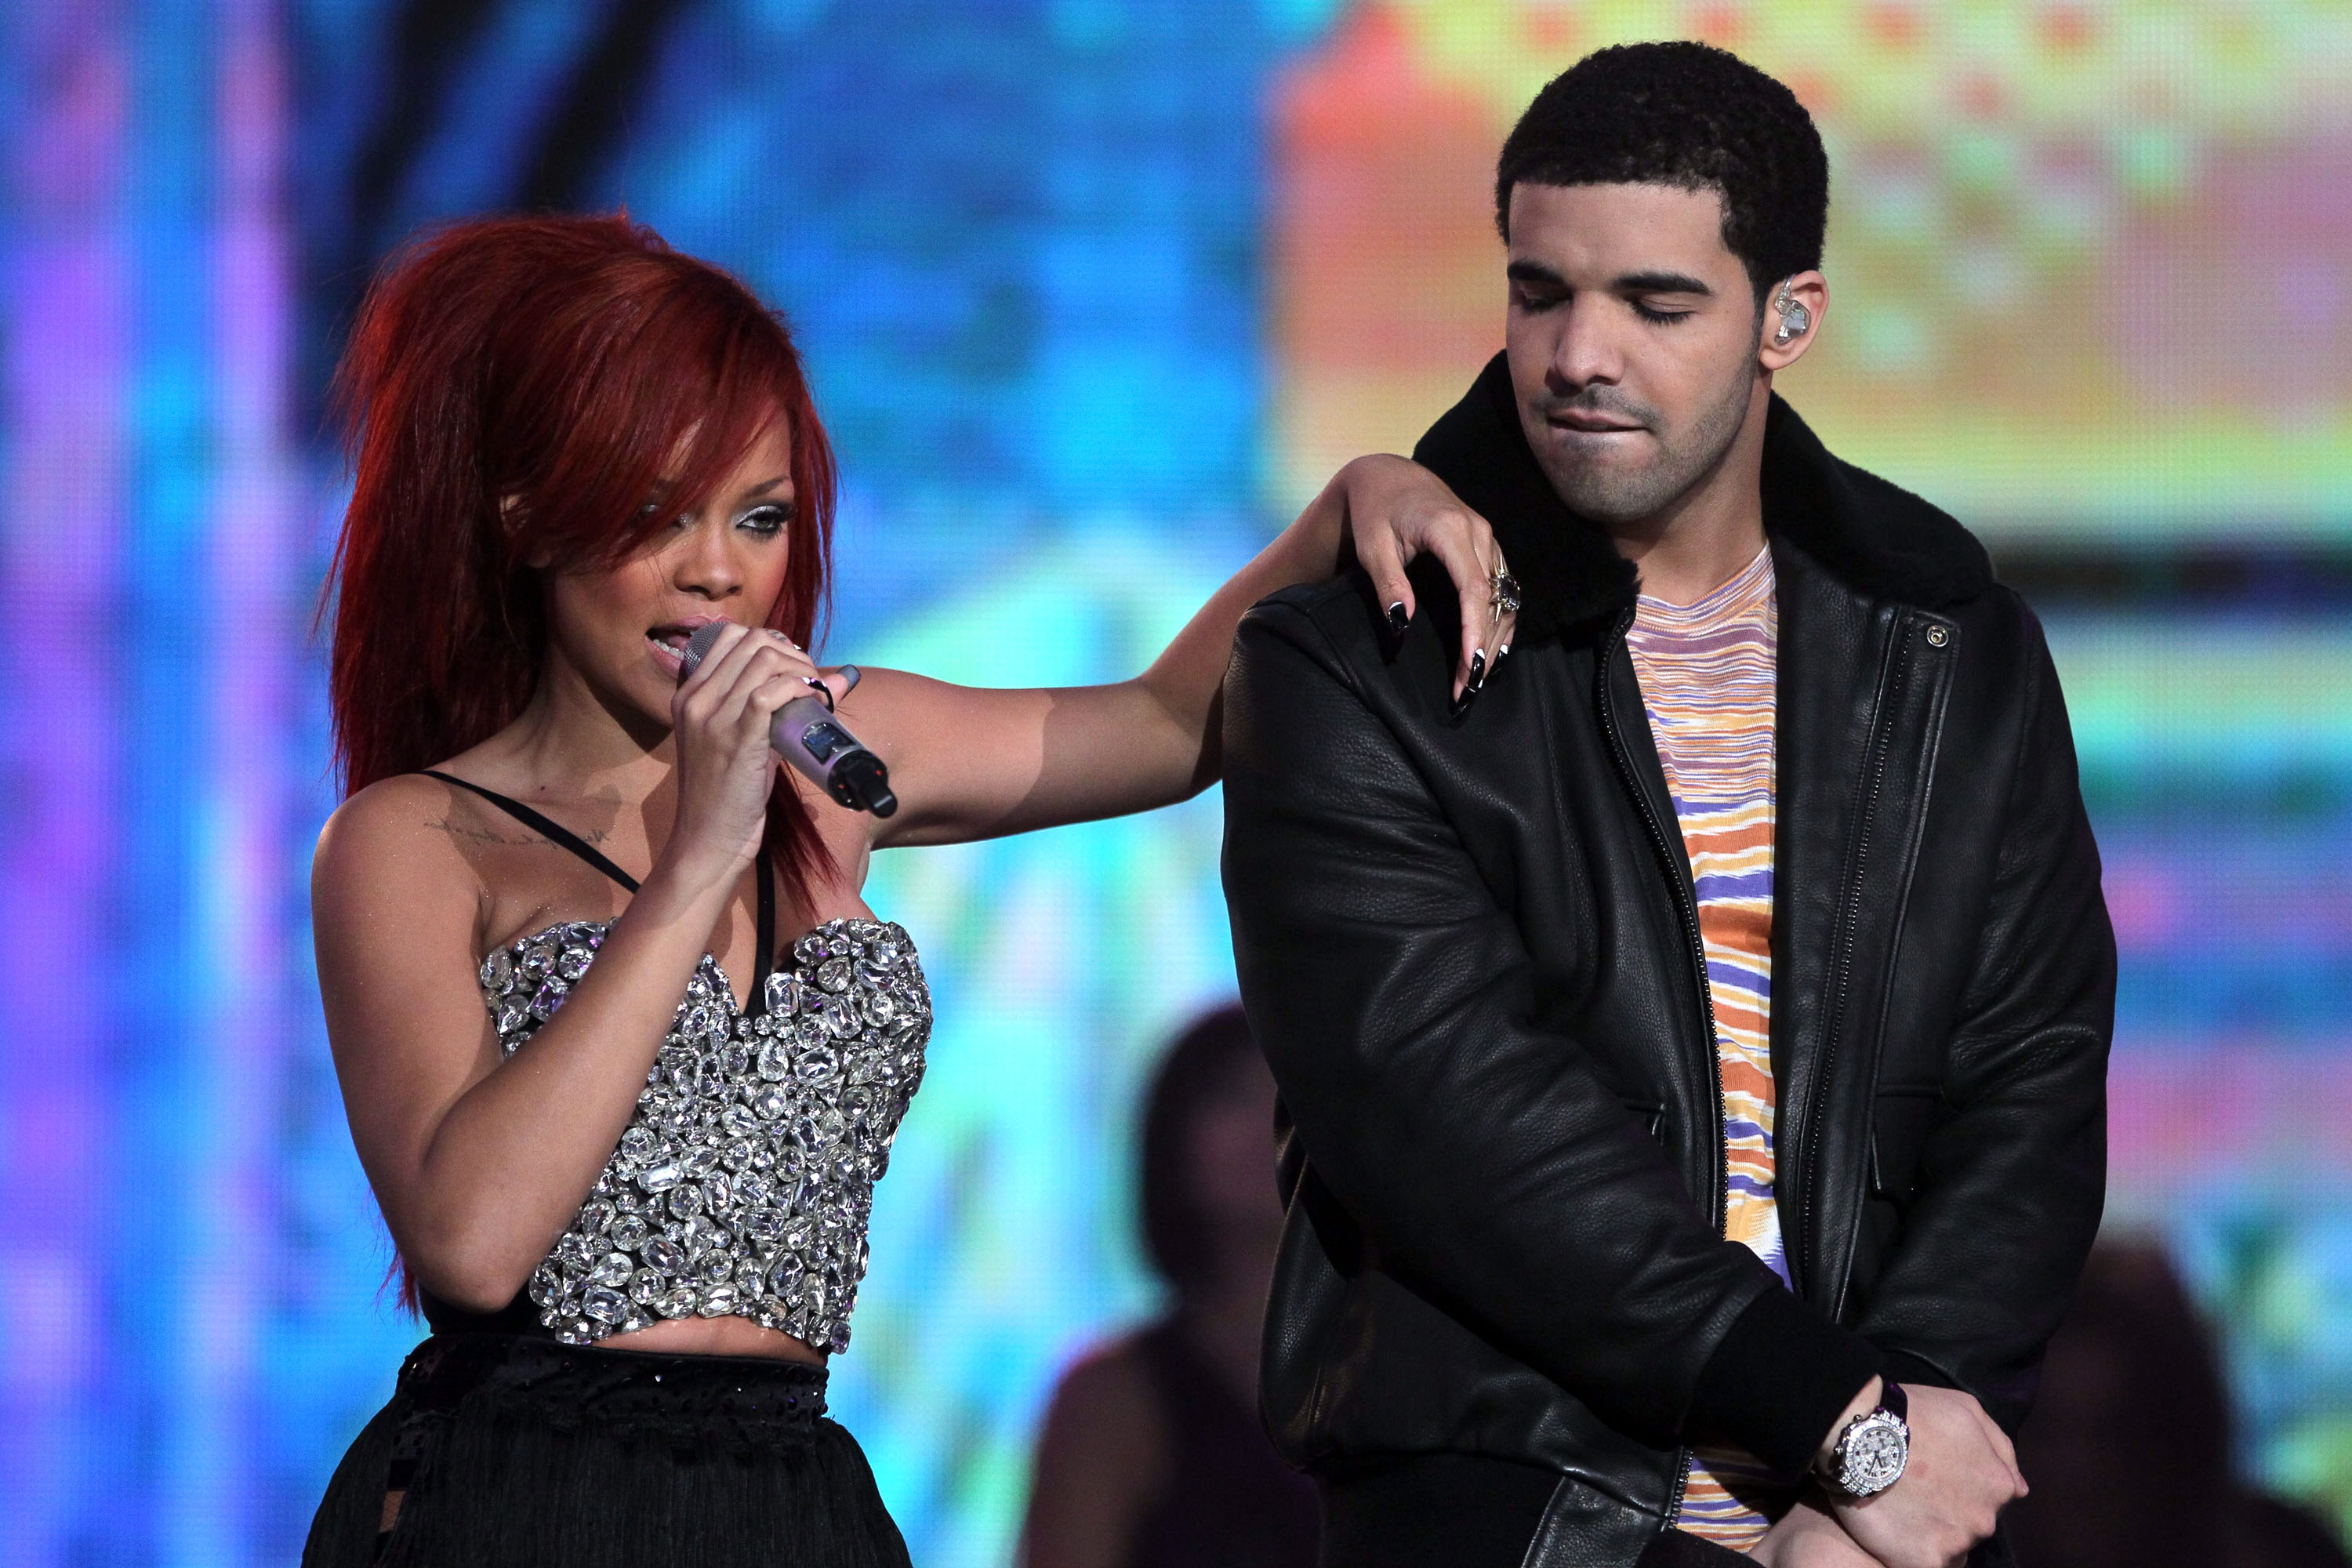 er drake dating rihanna 2013